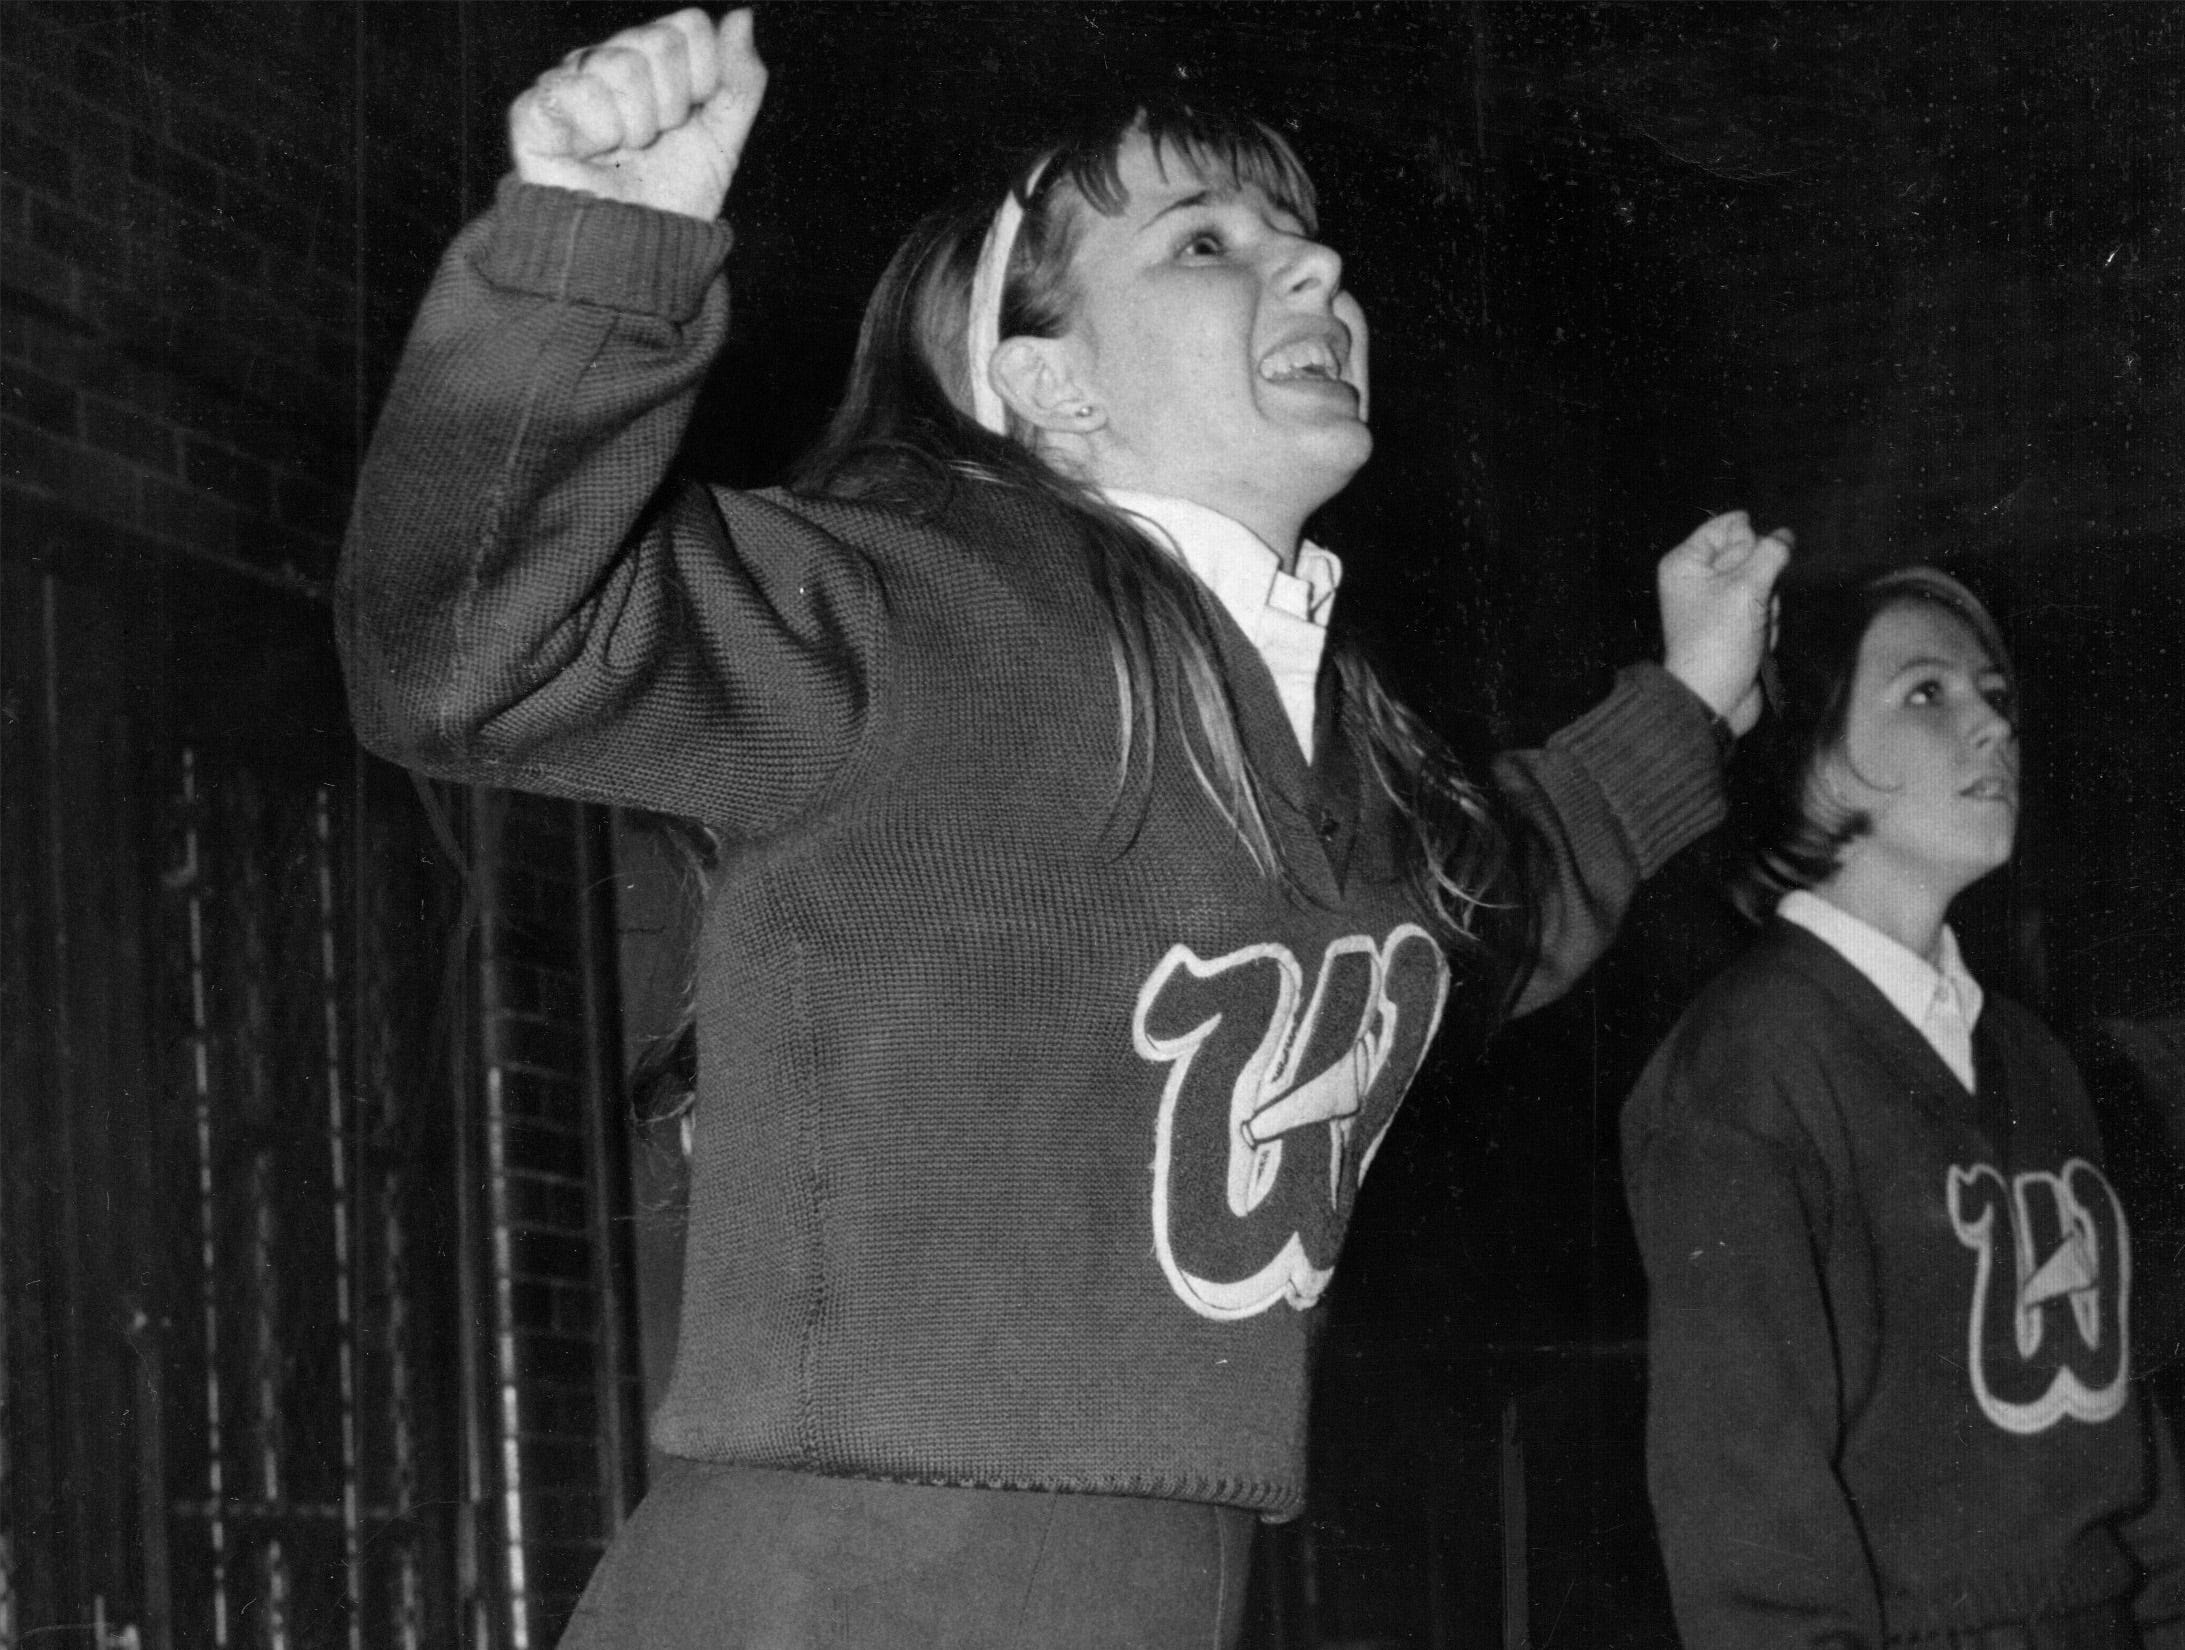 Despite the encouragement of Wood cheerleader Irene Schelske, the Woodchucks lost to Shortridge 95-71 in December, 1967.